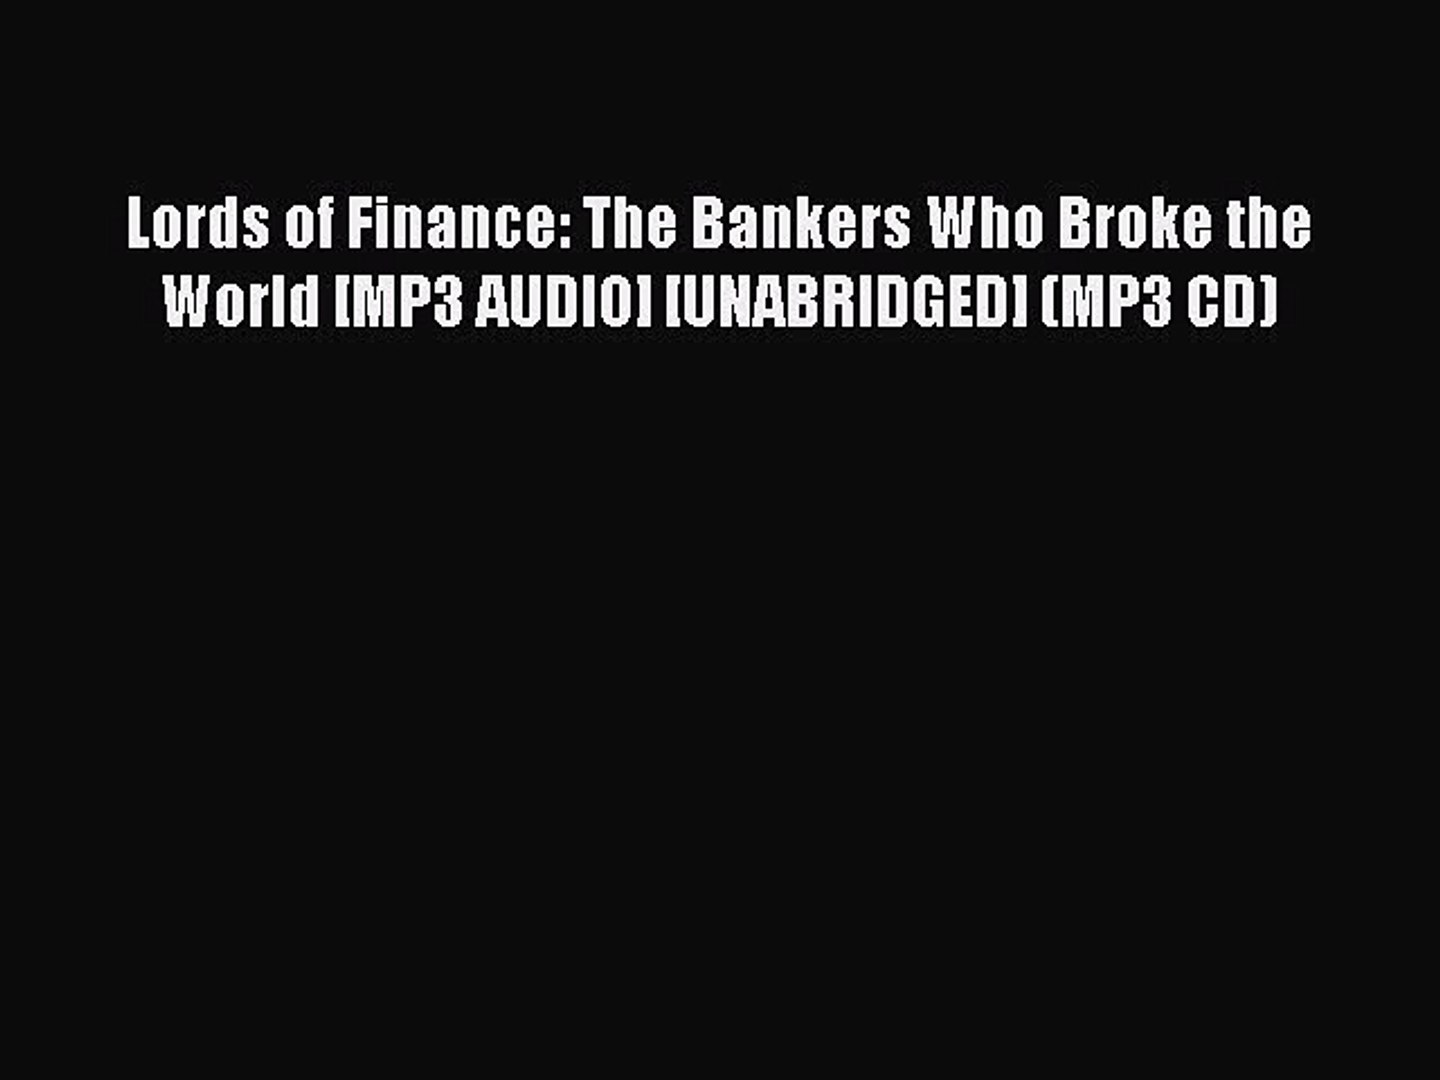 Download Lords of Finance: The Bankers Who Broke the World [MP3 AUDIO] [UNABRIDGED] (MP3 CD)